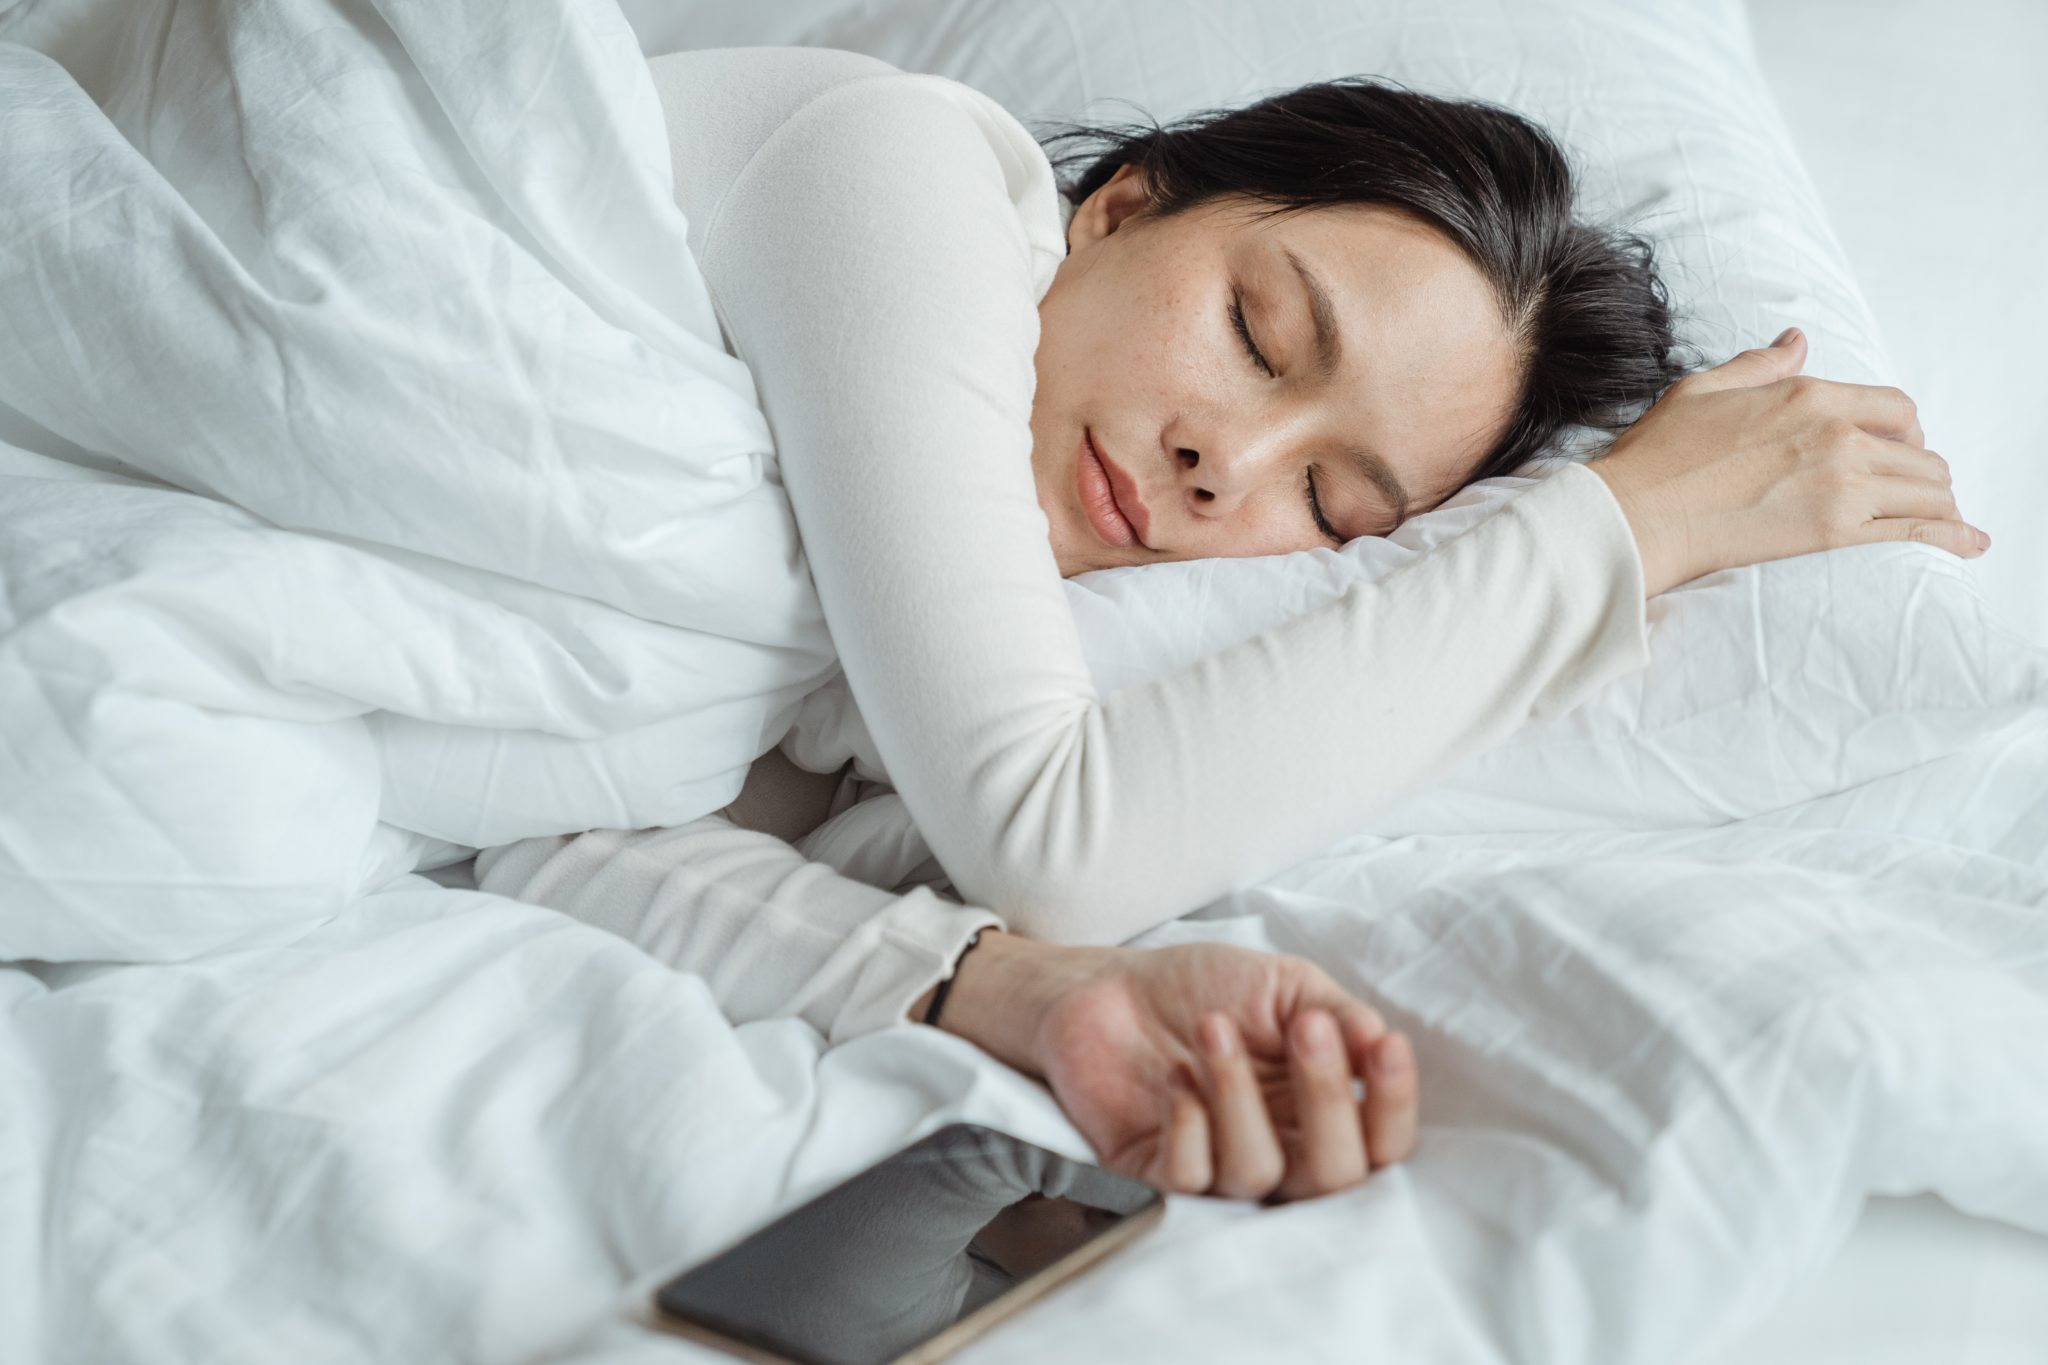 If you struggle to fall or stay asleep, these game-changing products can help you get a better night's sleep.